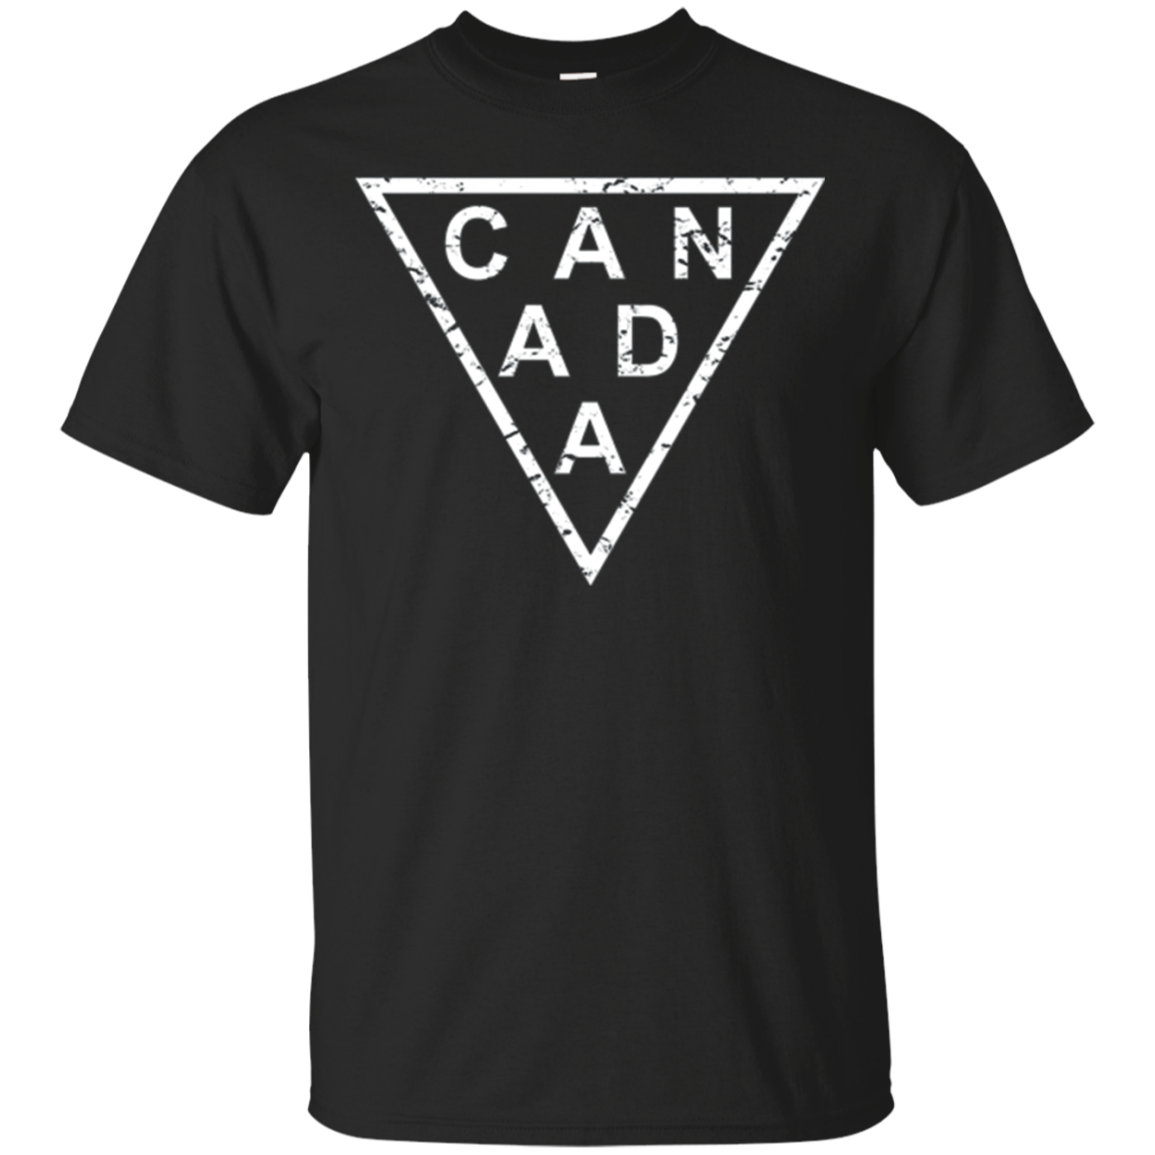 Stylish Canada T-Shirt